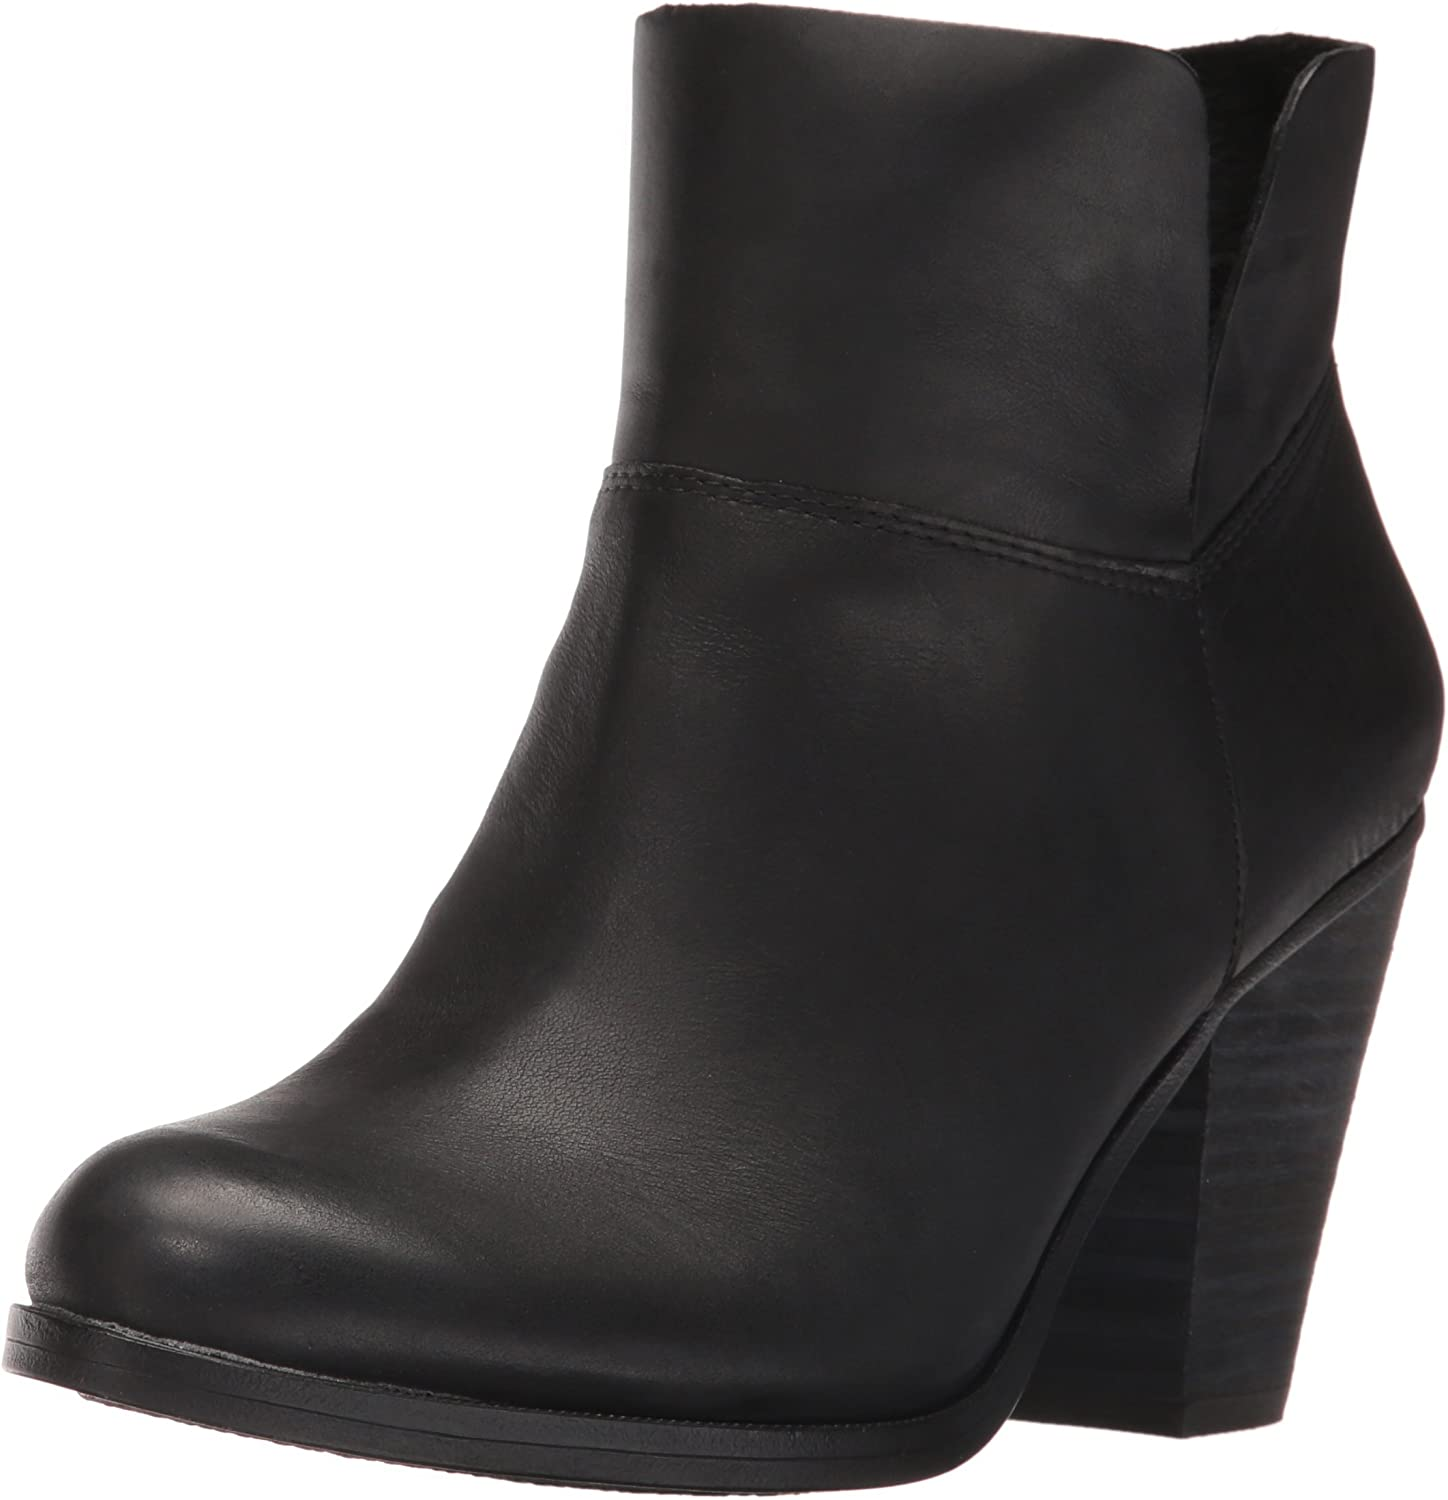 Vince Camuto Helyn Ankle Boot